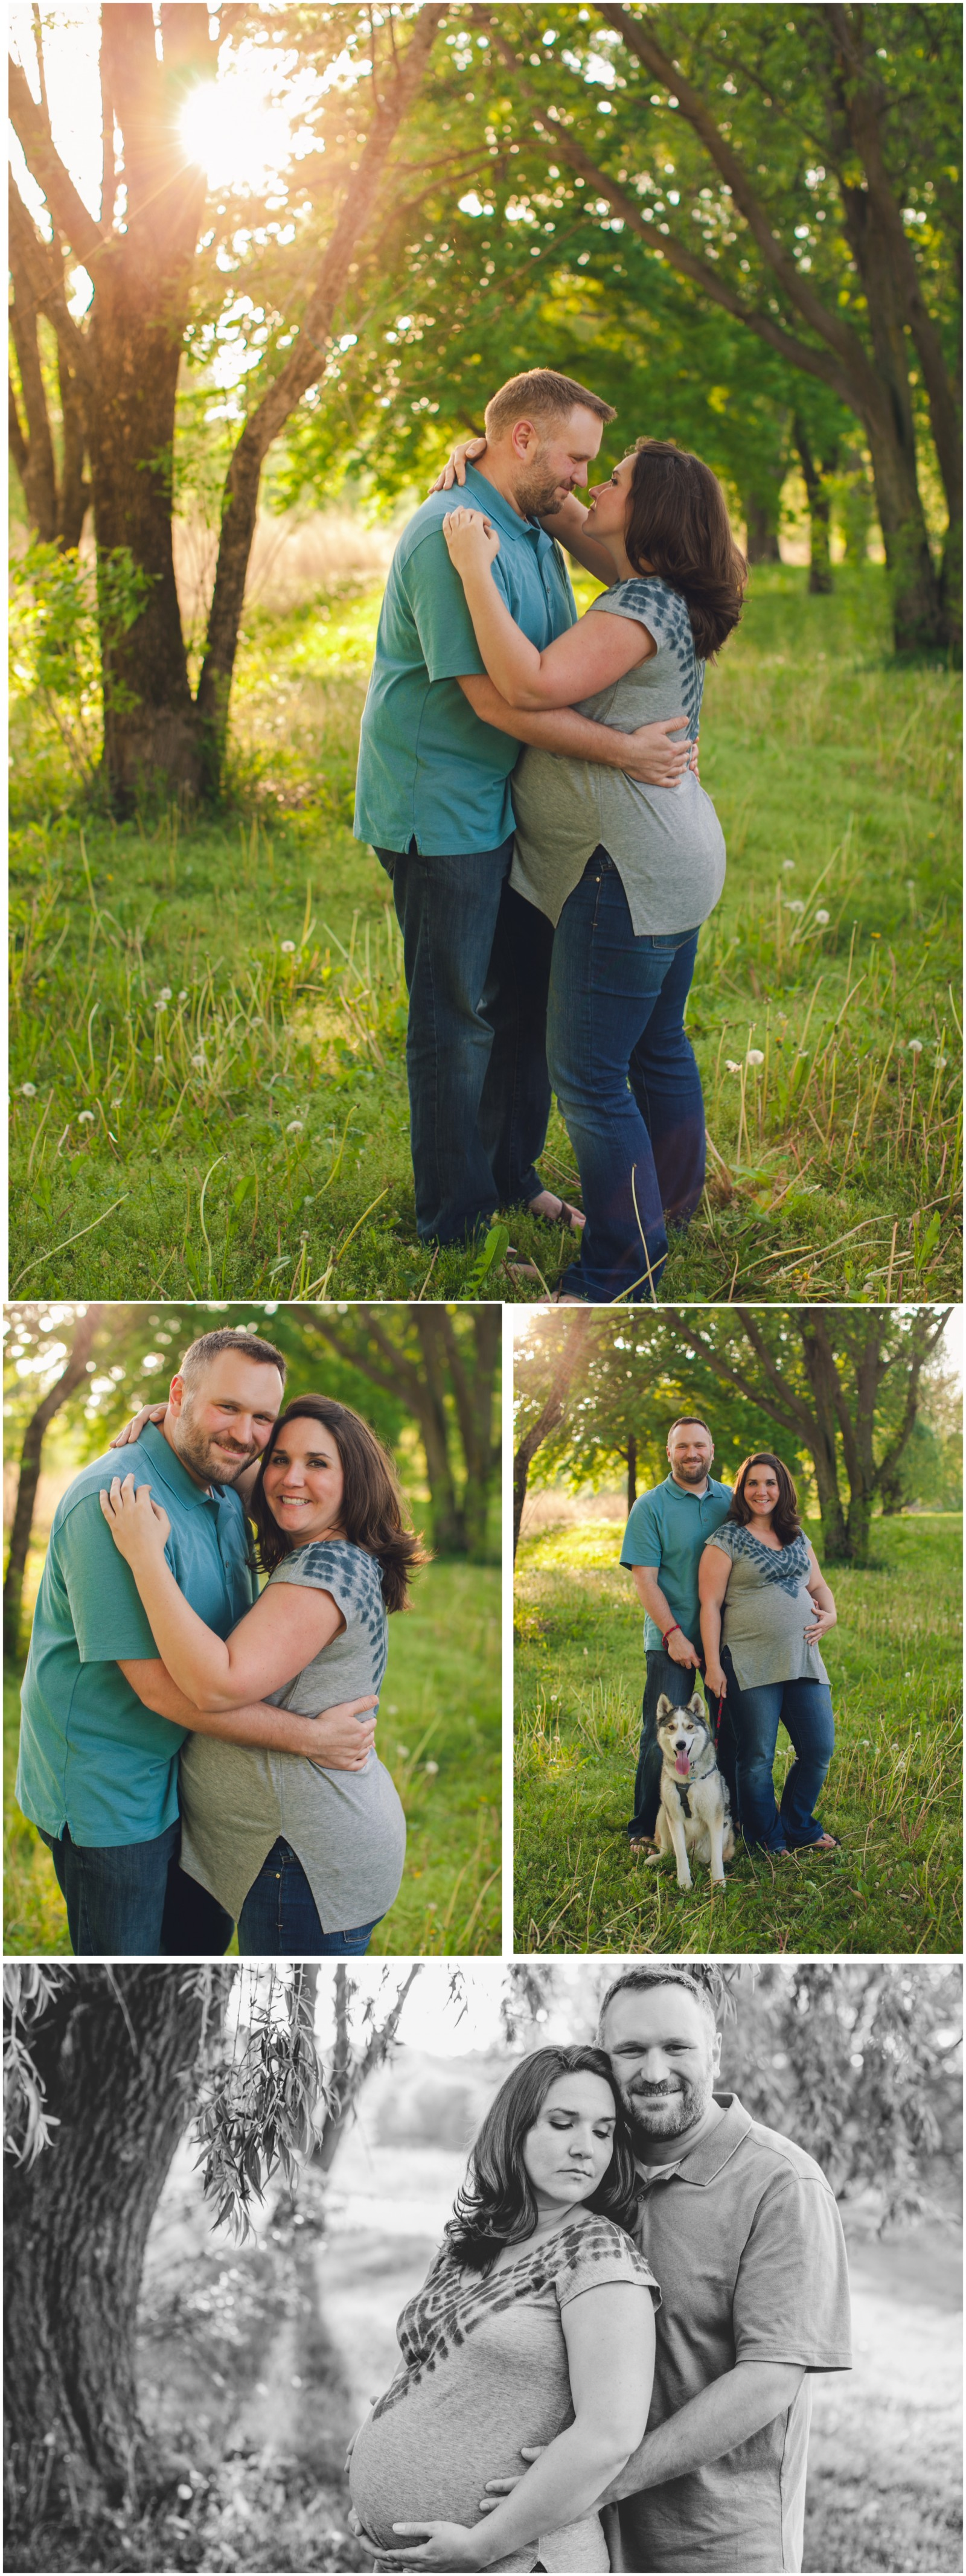 Maternity Session Lafayette Indiana Pearl Photo & Design 4